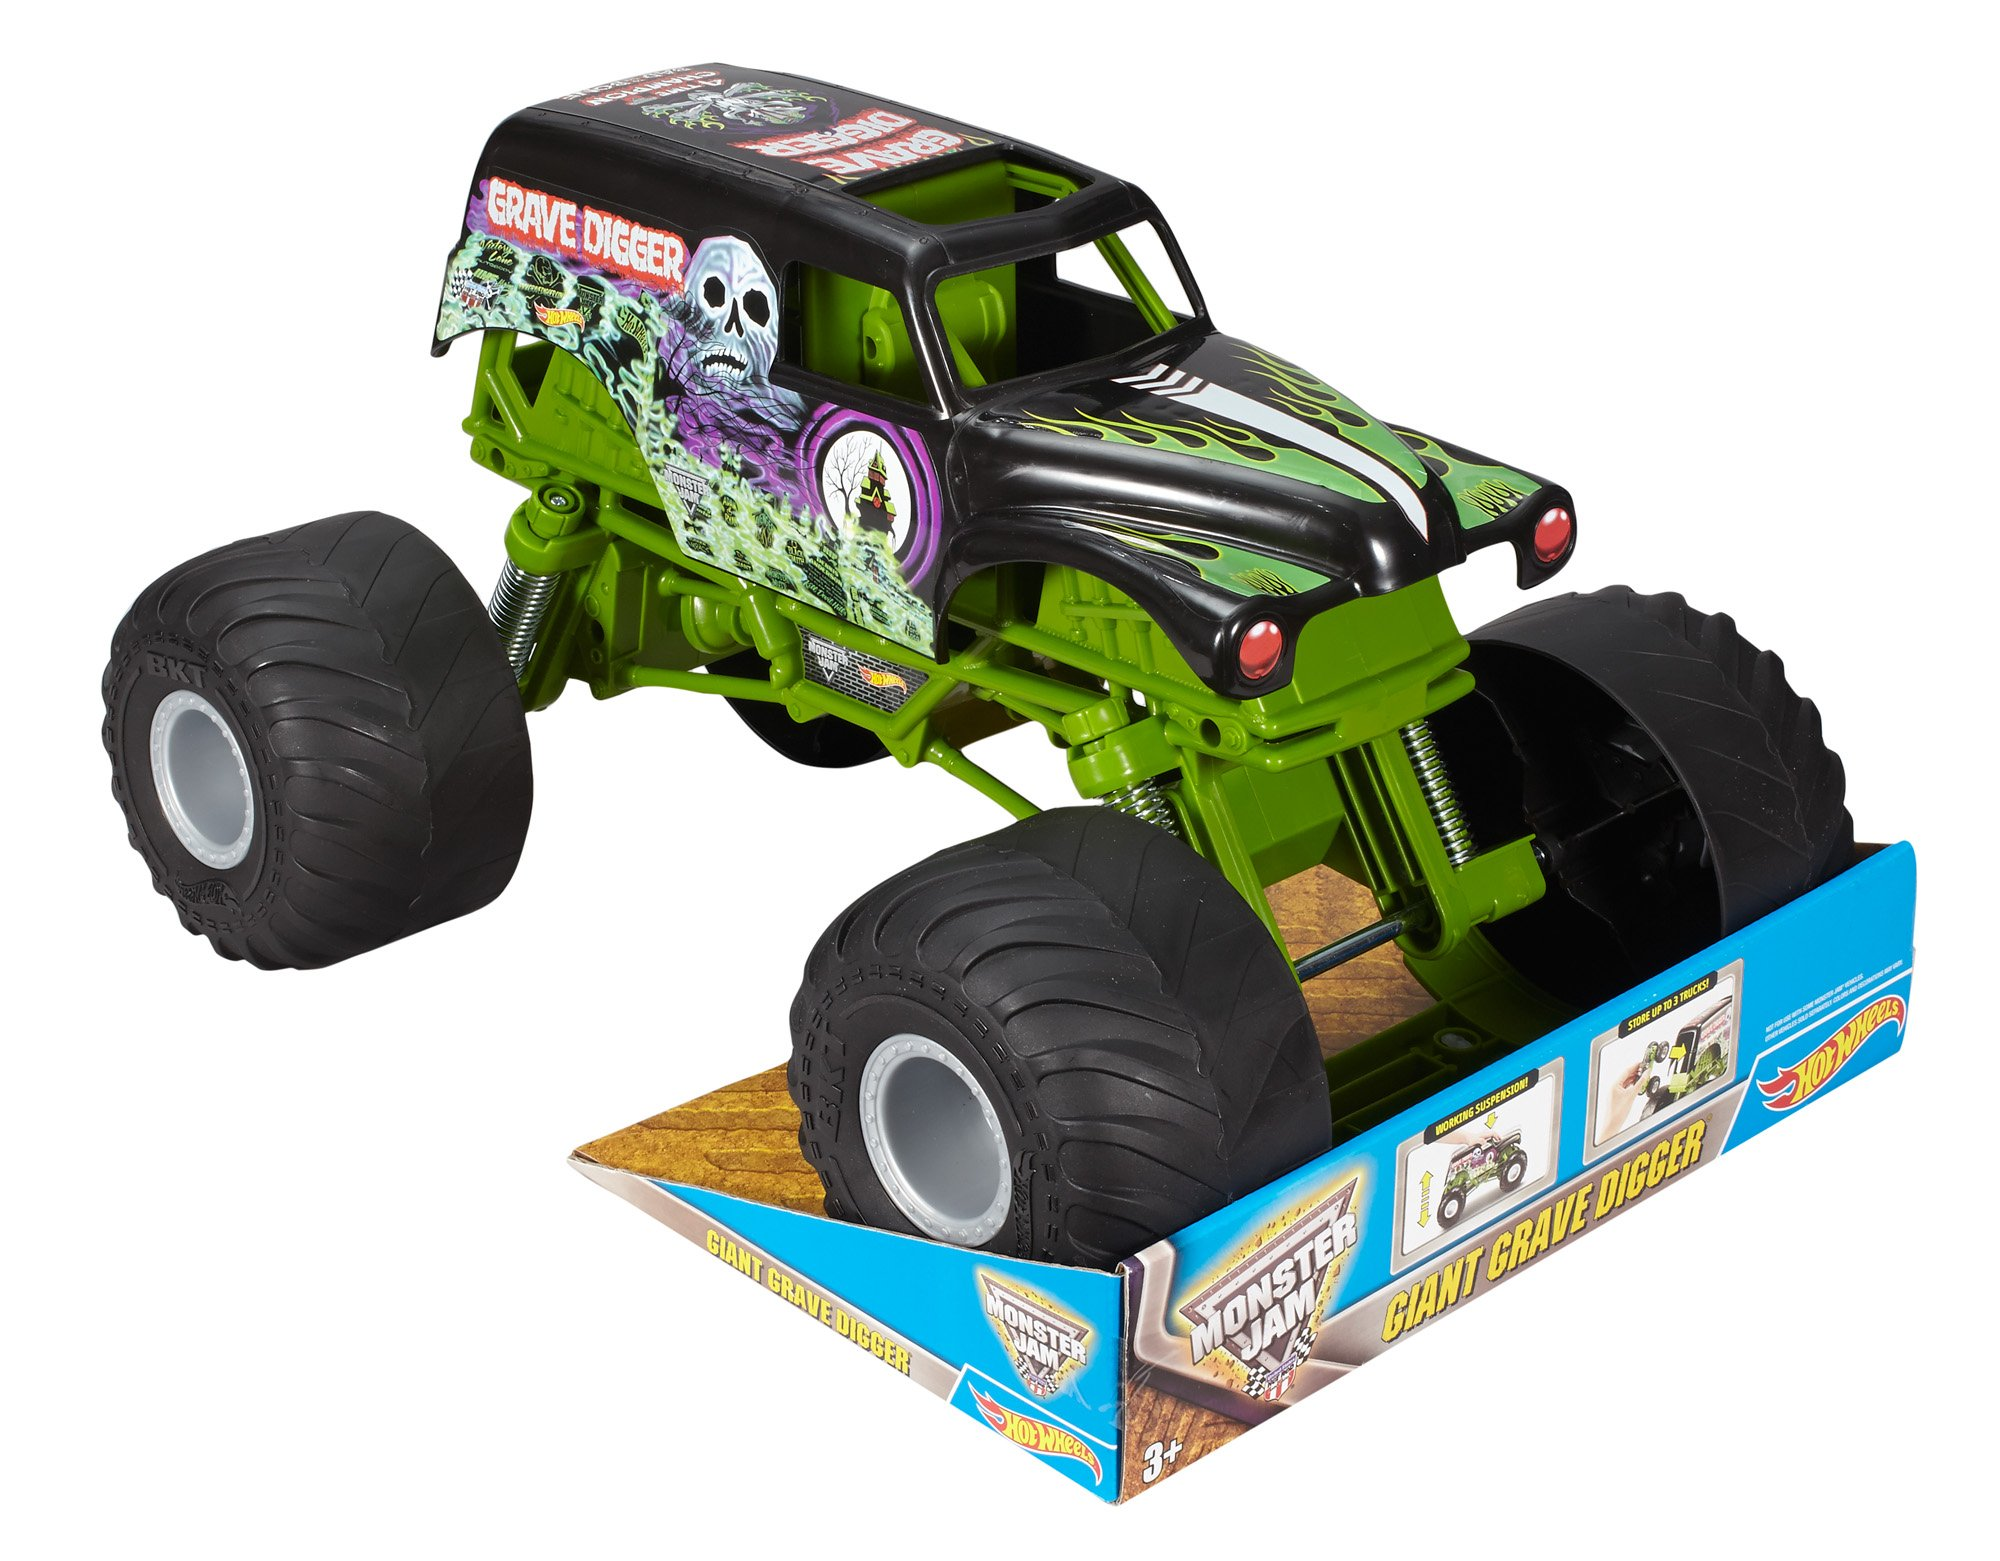 Hot Wheels Monster Jam Giant Grave Digger Truck by Hot Wheels (Image #3)